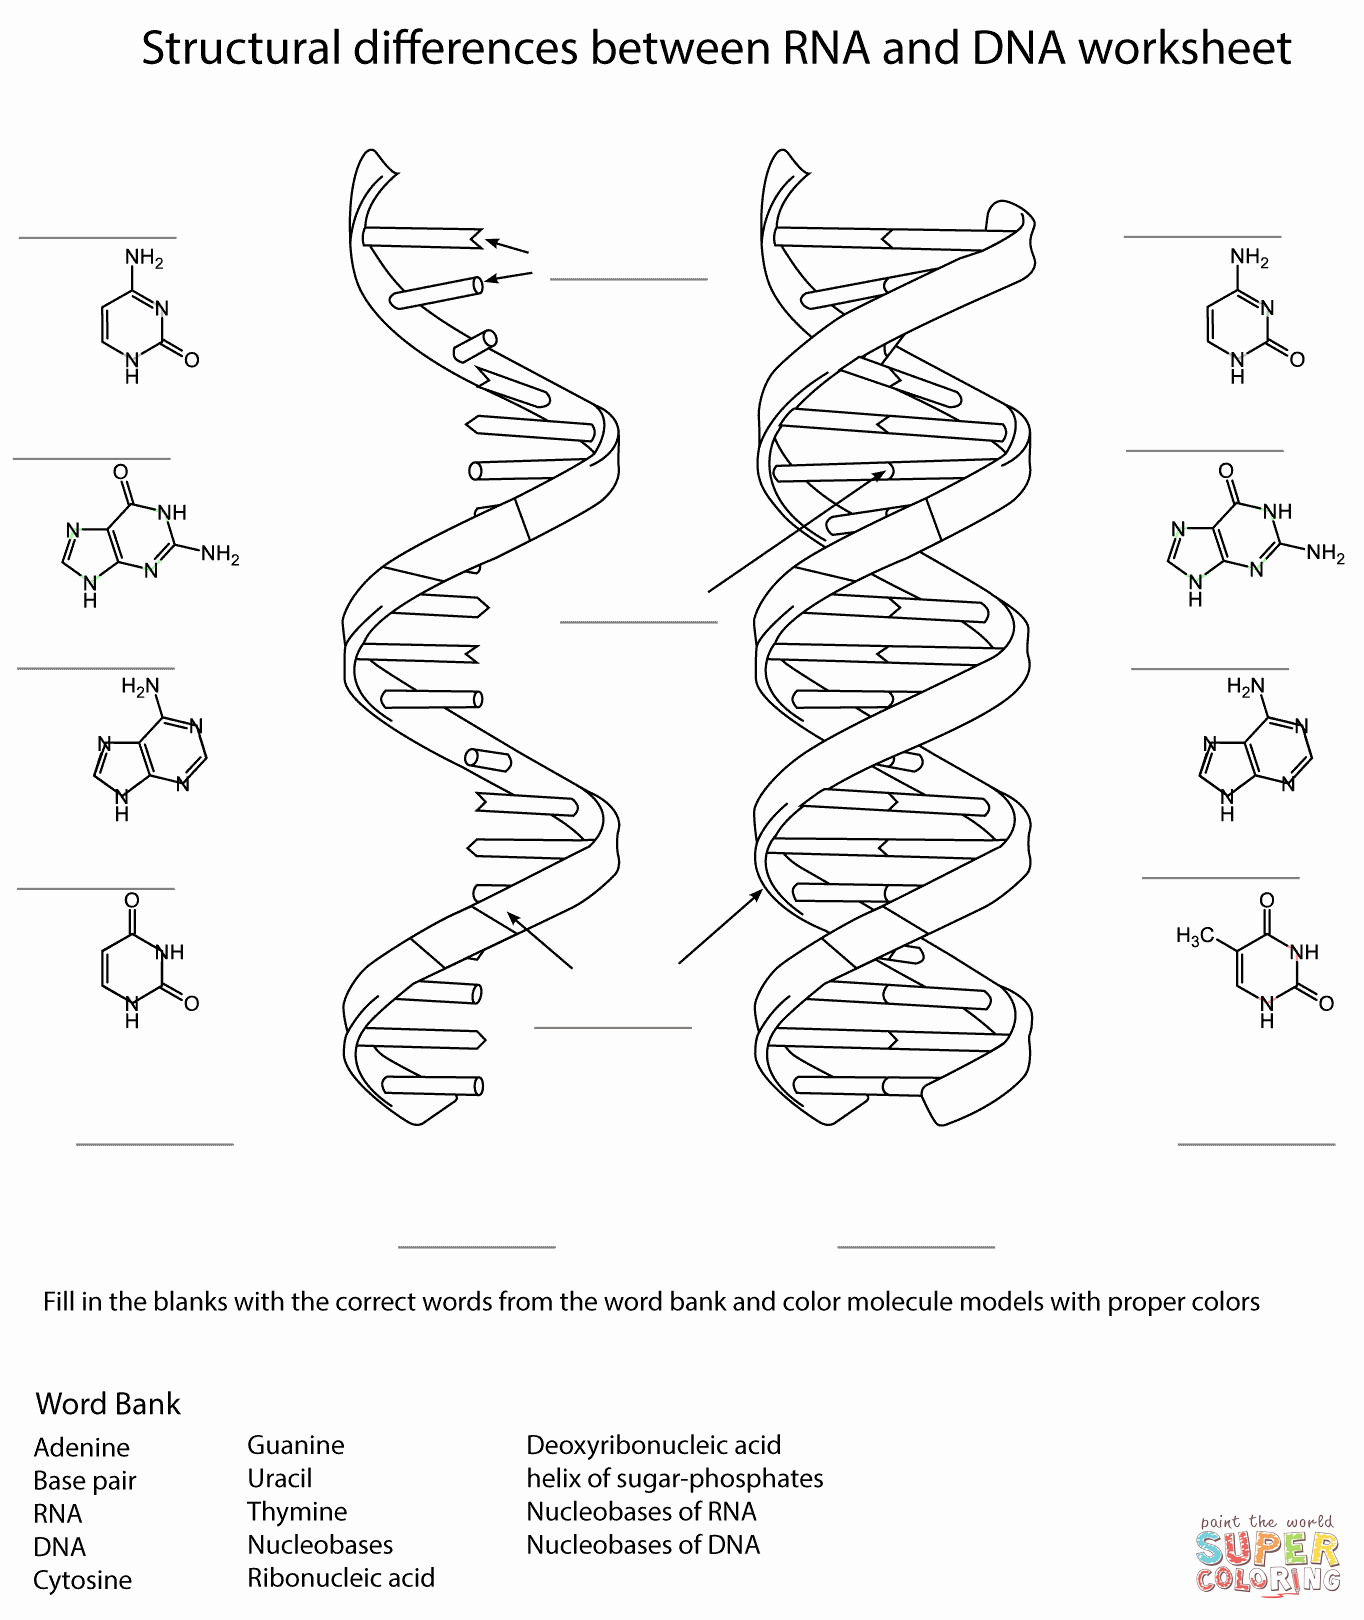 Dna and Rna Worksheet Answers Lovely Biology tomorrow Belongs to Those who Prepare today